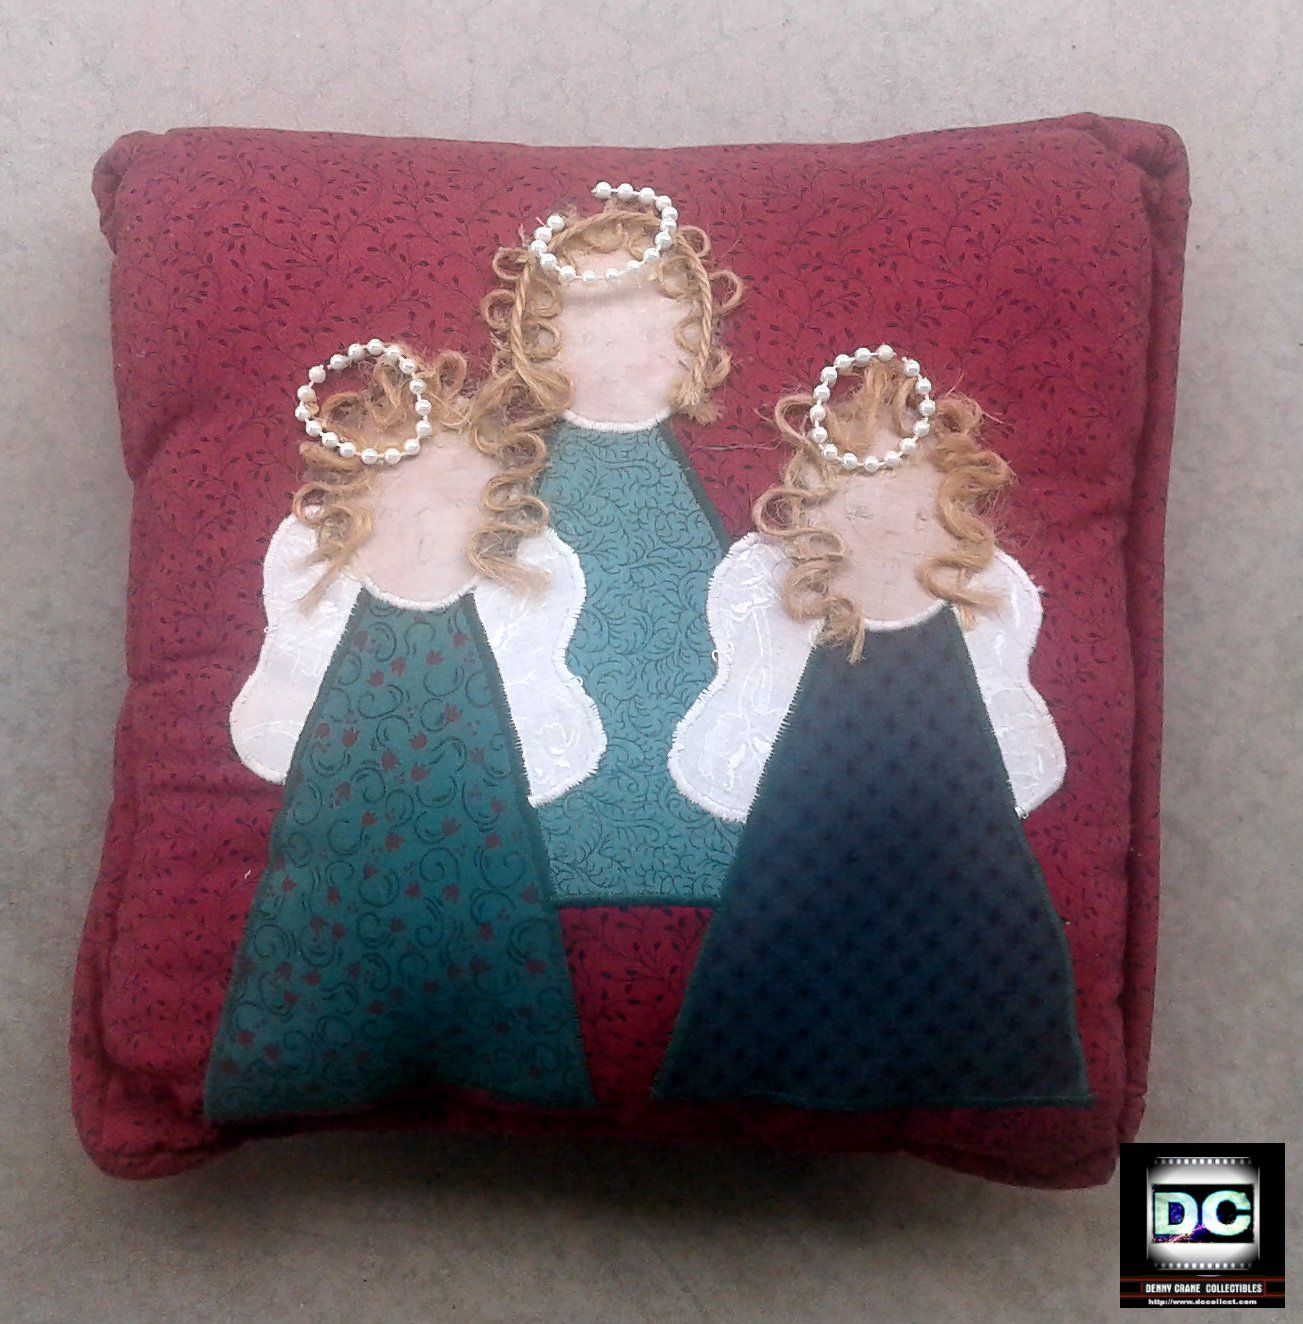 Angels Decorative Throw Pillow-Holidays Decor-Xmas Gift-Home Accent (Red)